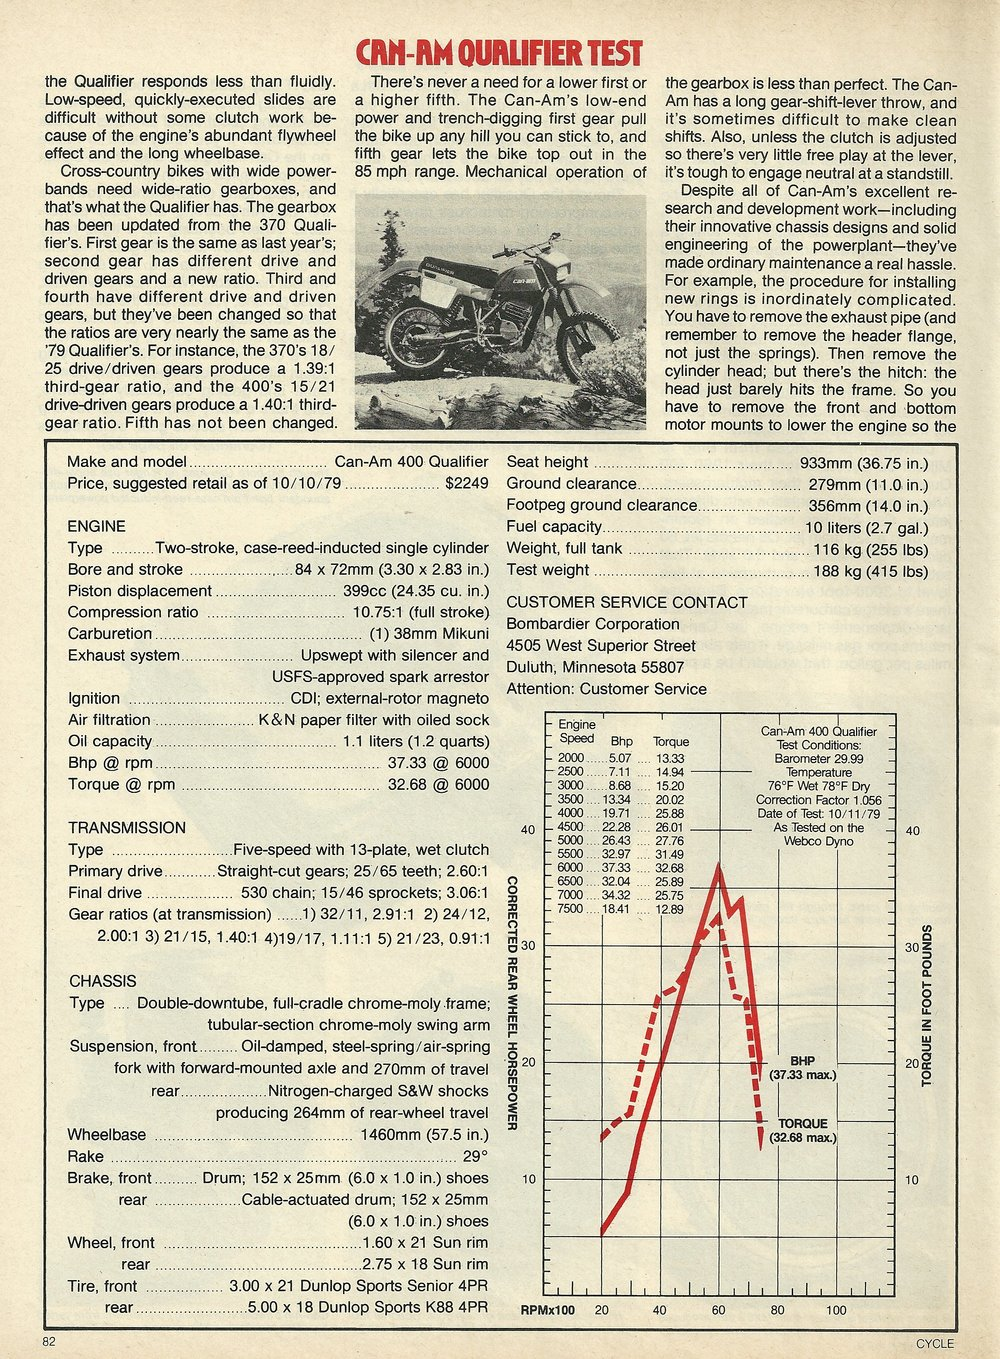 1980 Can-Am 400 Qualifier off road test 6.JPG